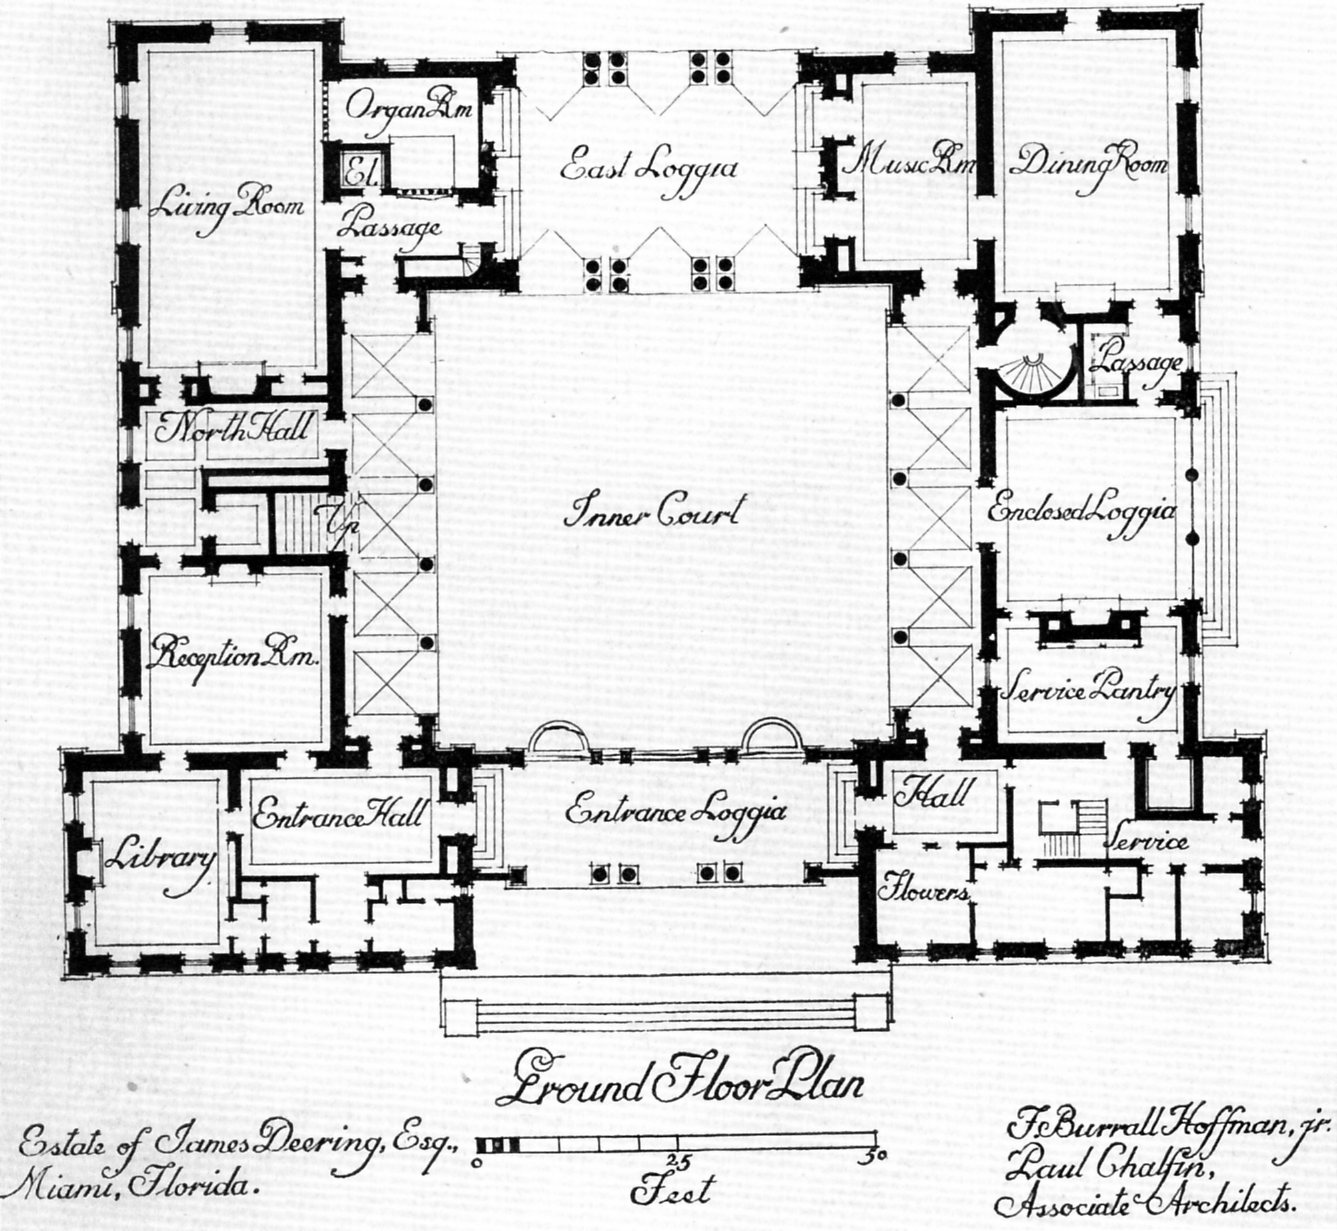 Central courtyard house plans find house plans for Courtyard house plans